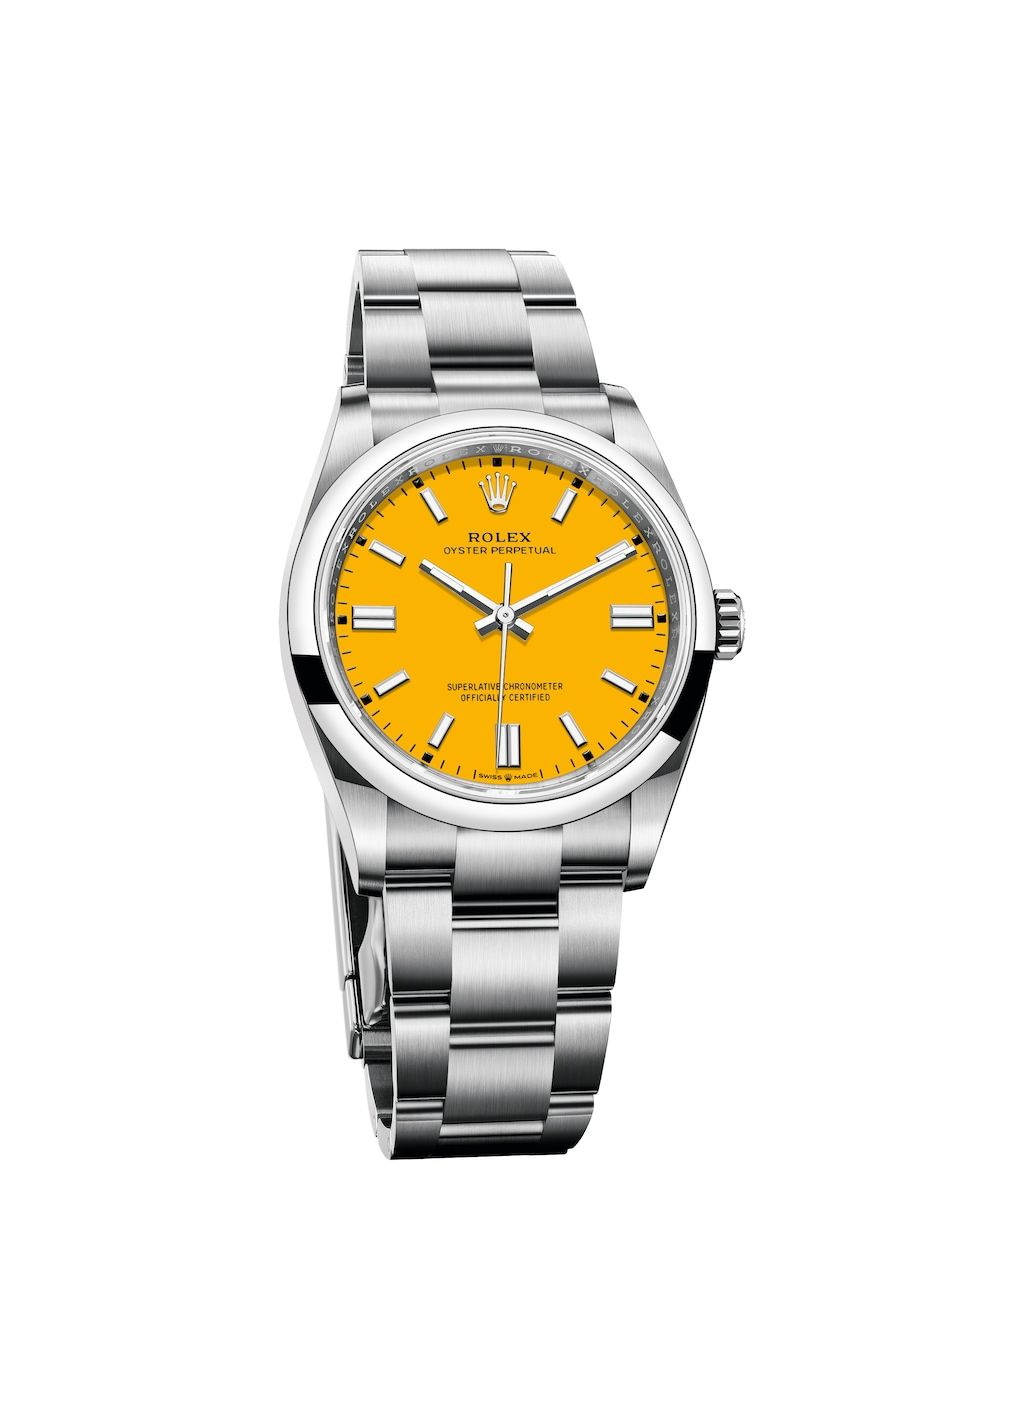 TOP 7 BEST EXPENSIVE ROLEX WATCHES FOR MEN 2019 2020